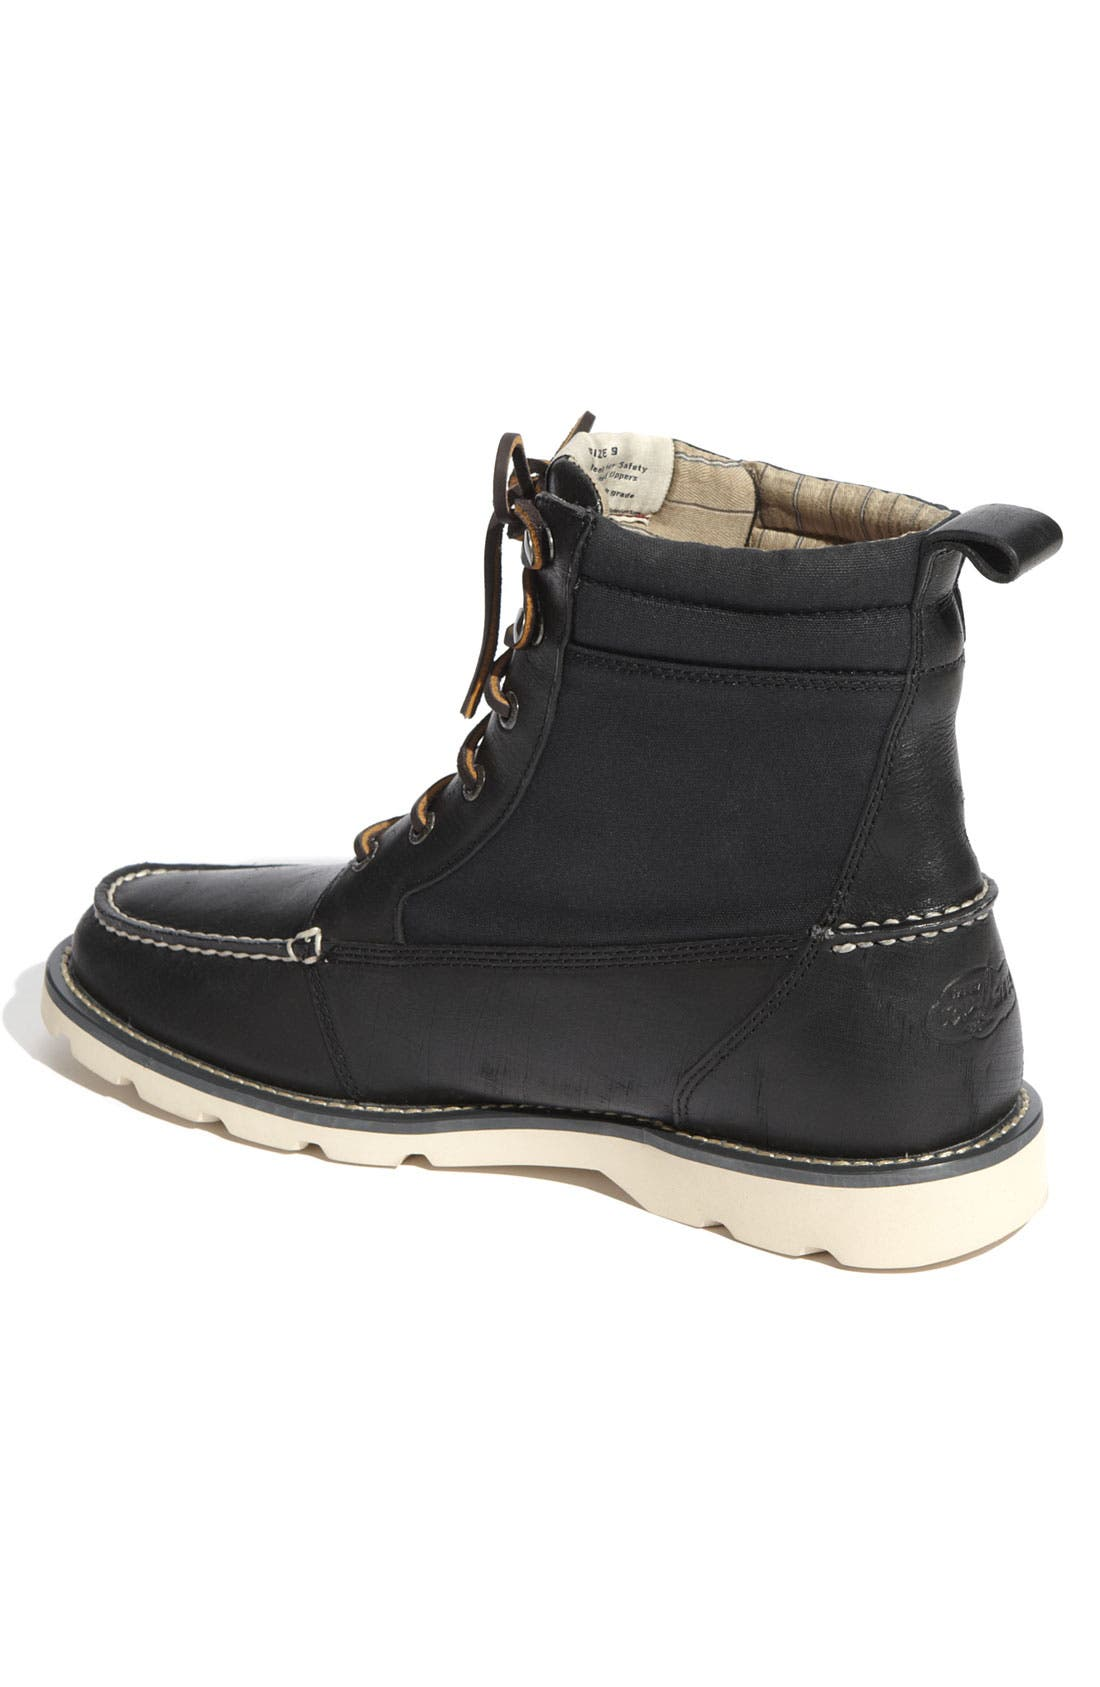 Alternate Image 3  - Sperry Top-Sider® 'Shipyard Rigger' Boot (Online Only)